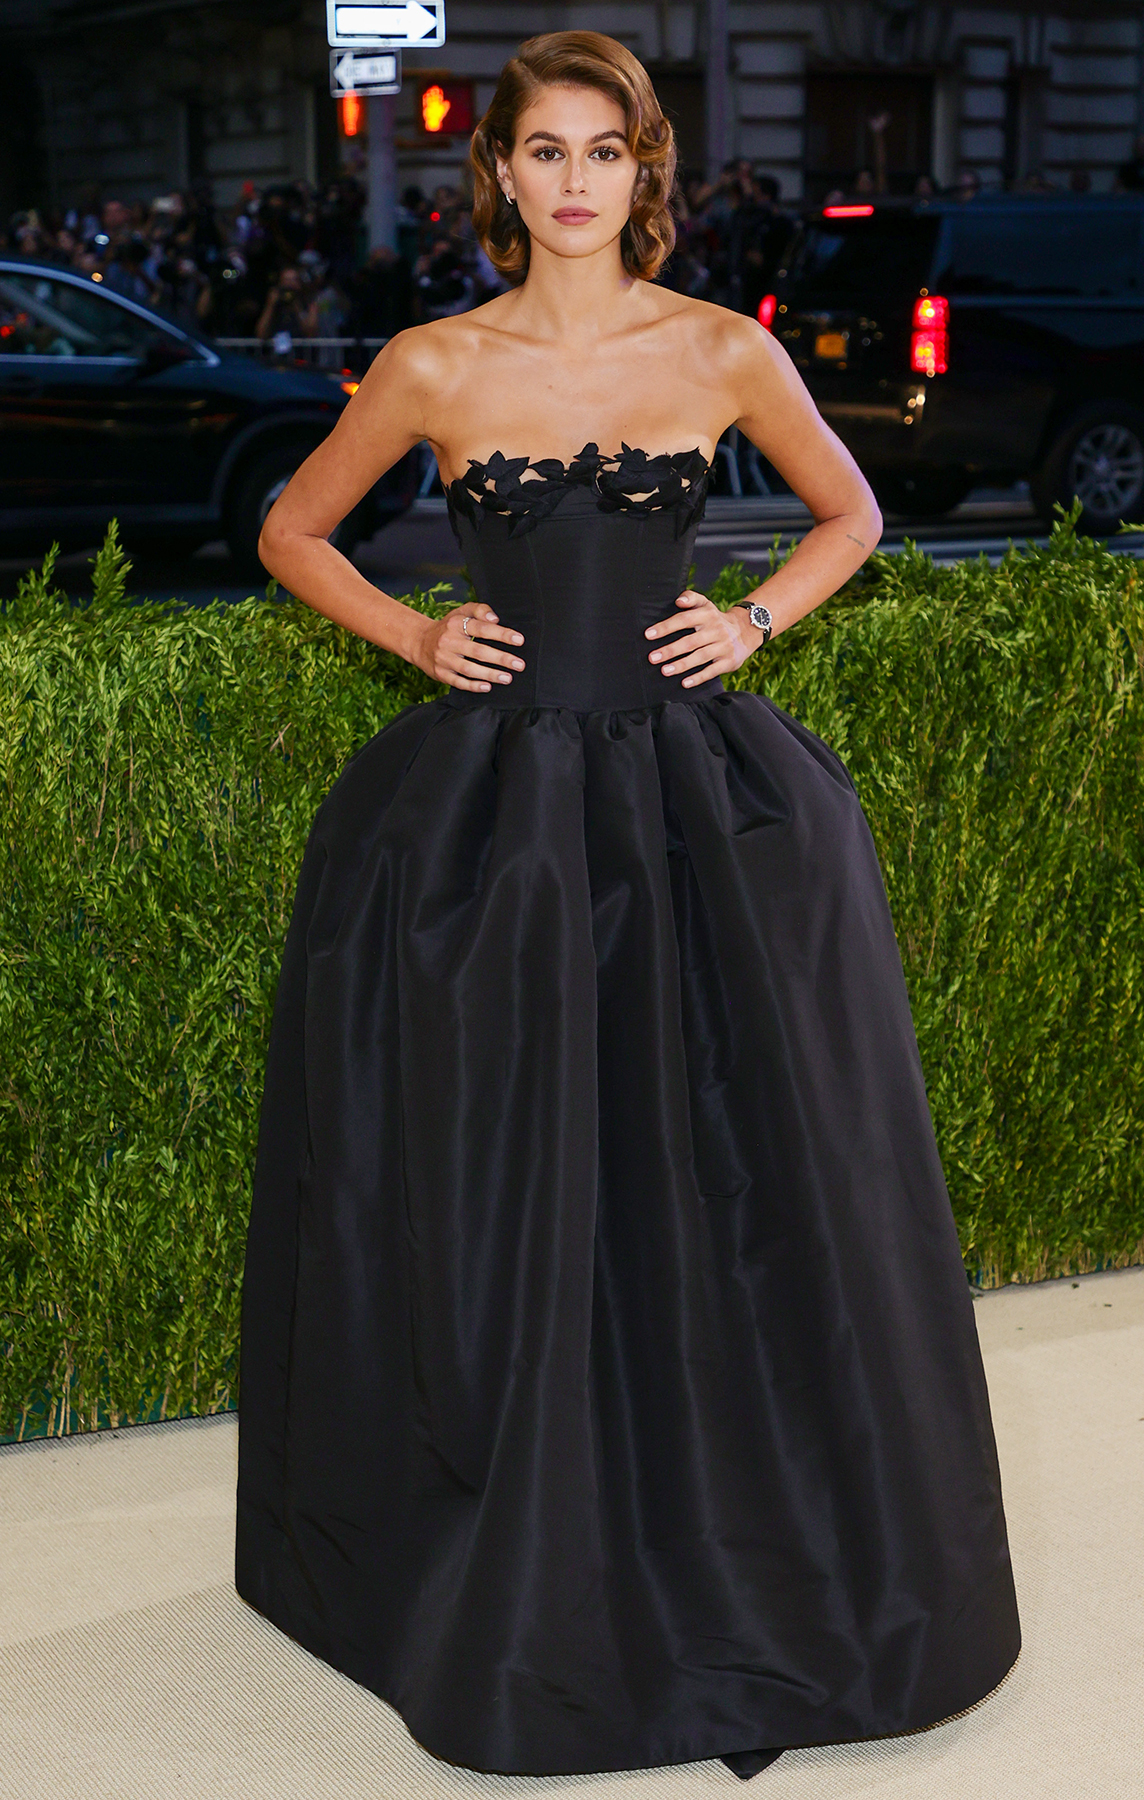 Kaia Gerber attends The 2021 Met Gala Celebrating In America: A Lexicon Of Fashion at Metropolitan Museum of Art on September 13, 2021 in New York City.